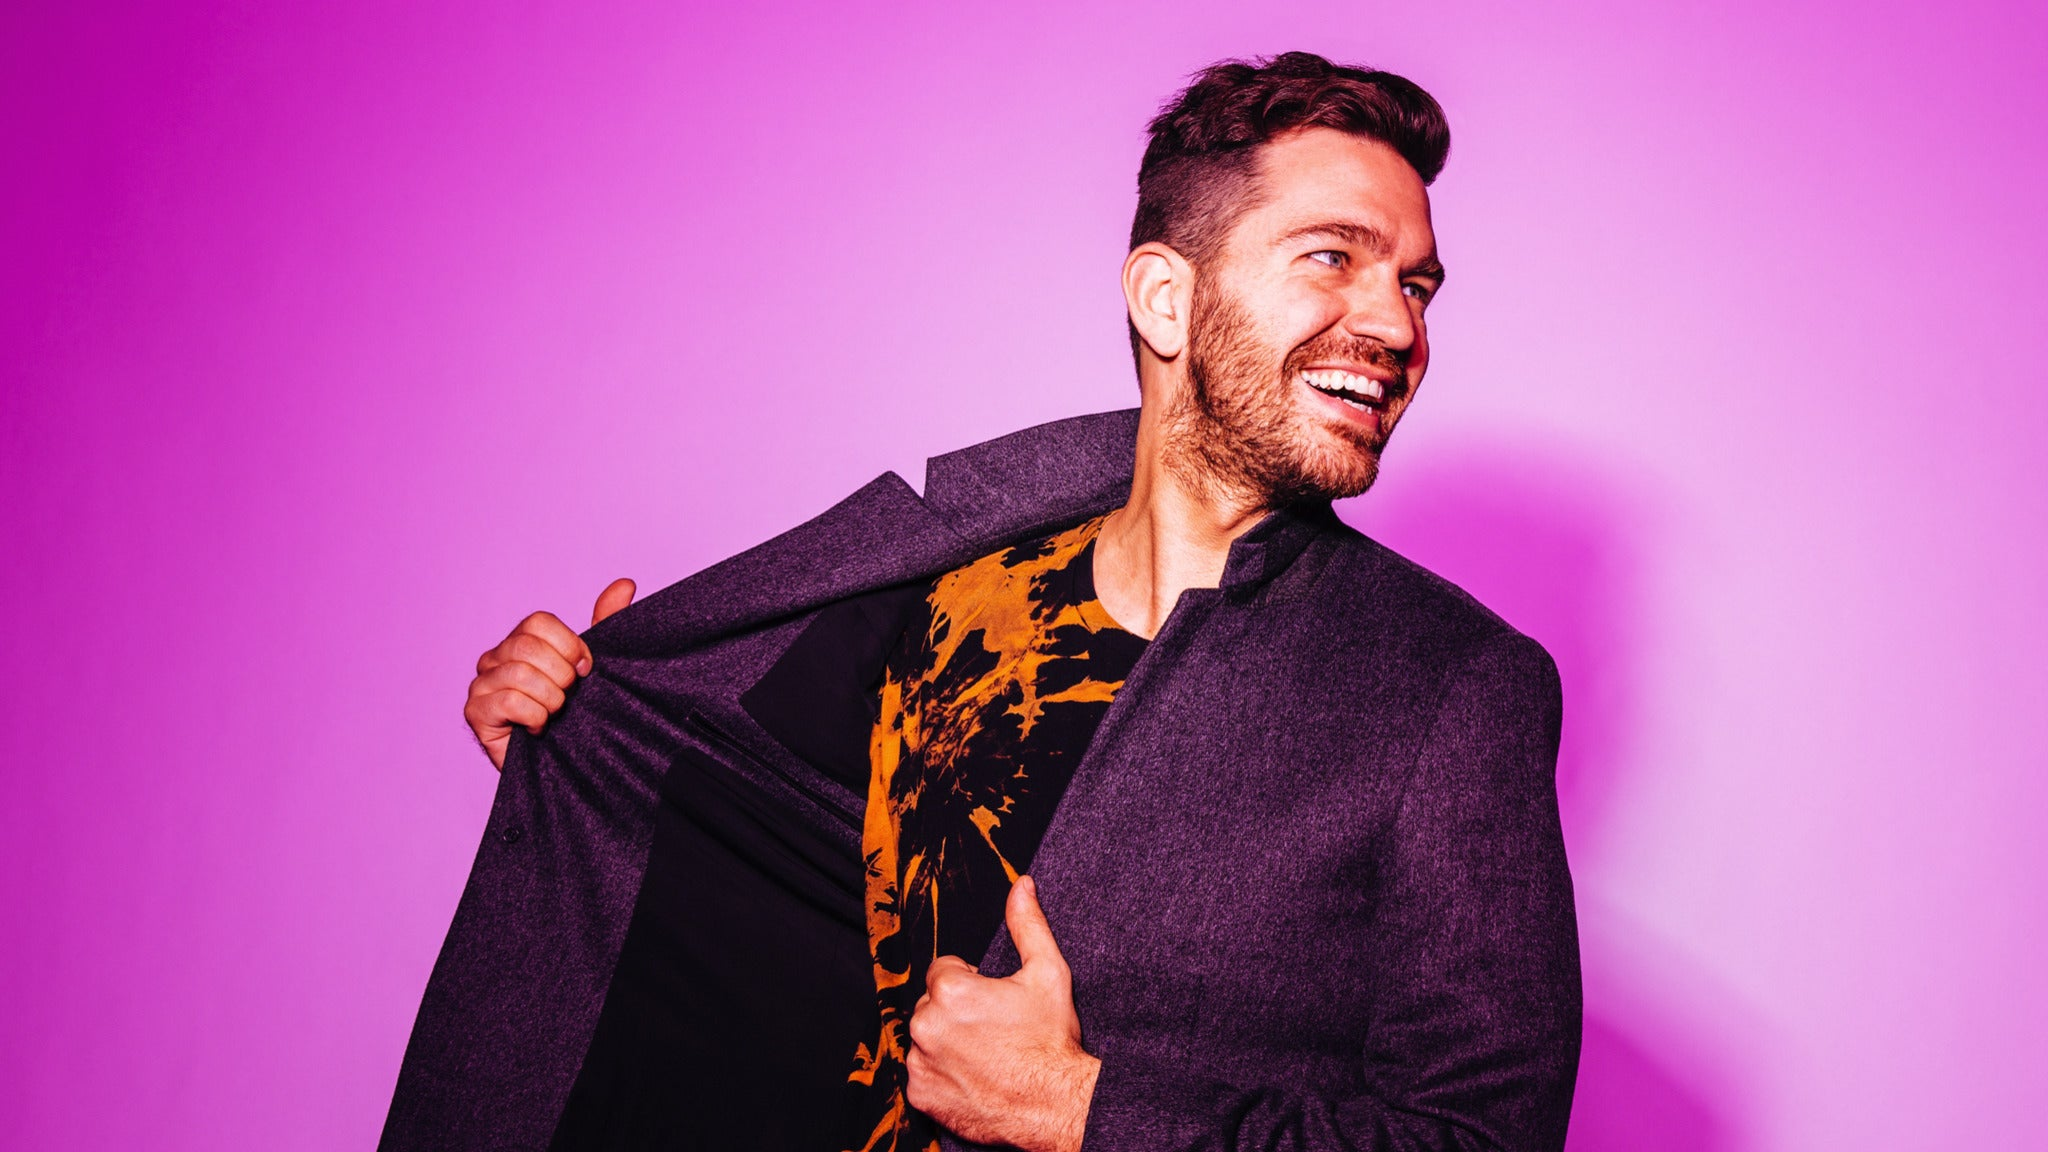 Andy Grammer at Knitting Factory Concert House - Boise